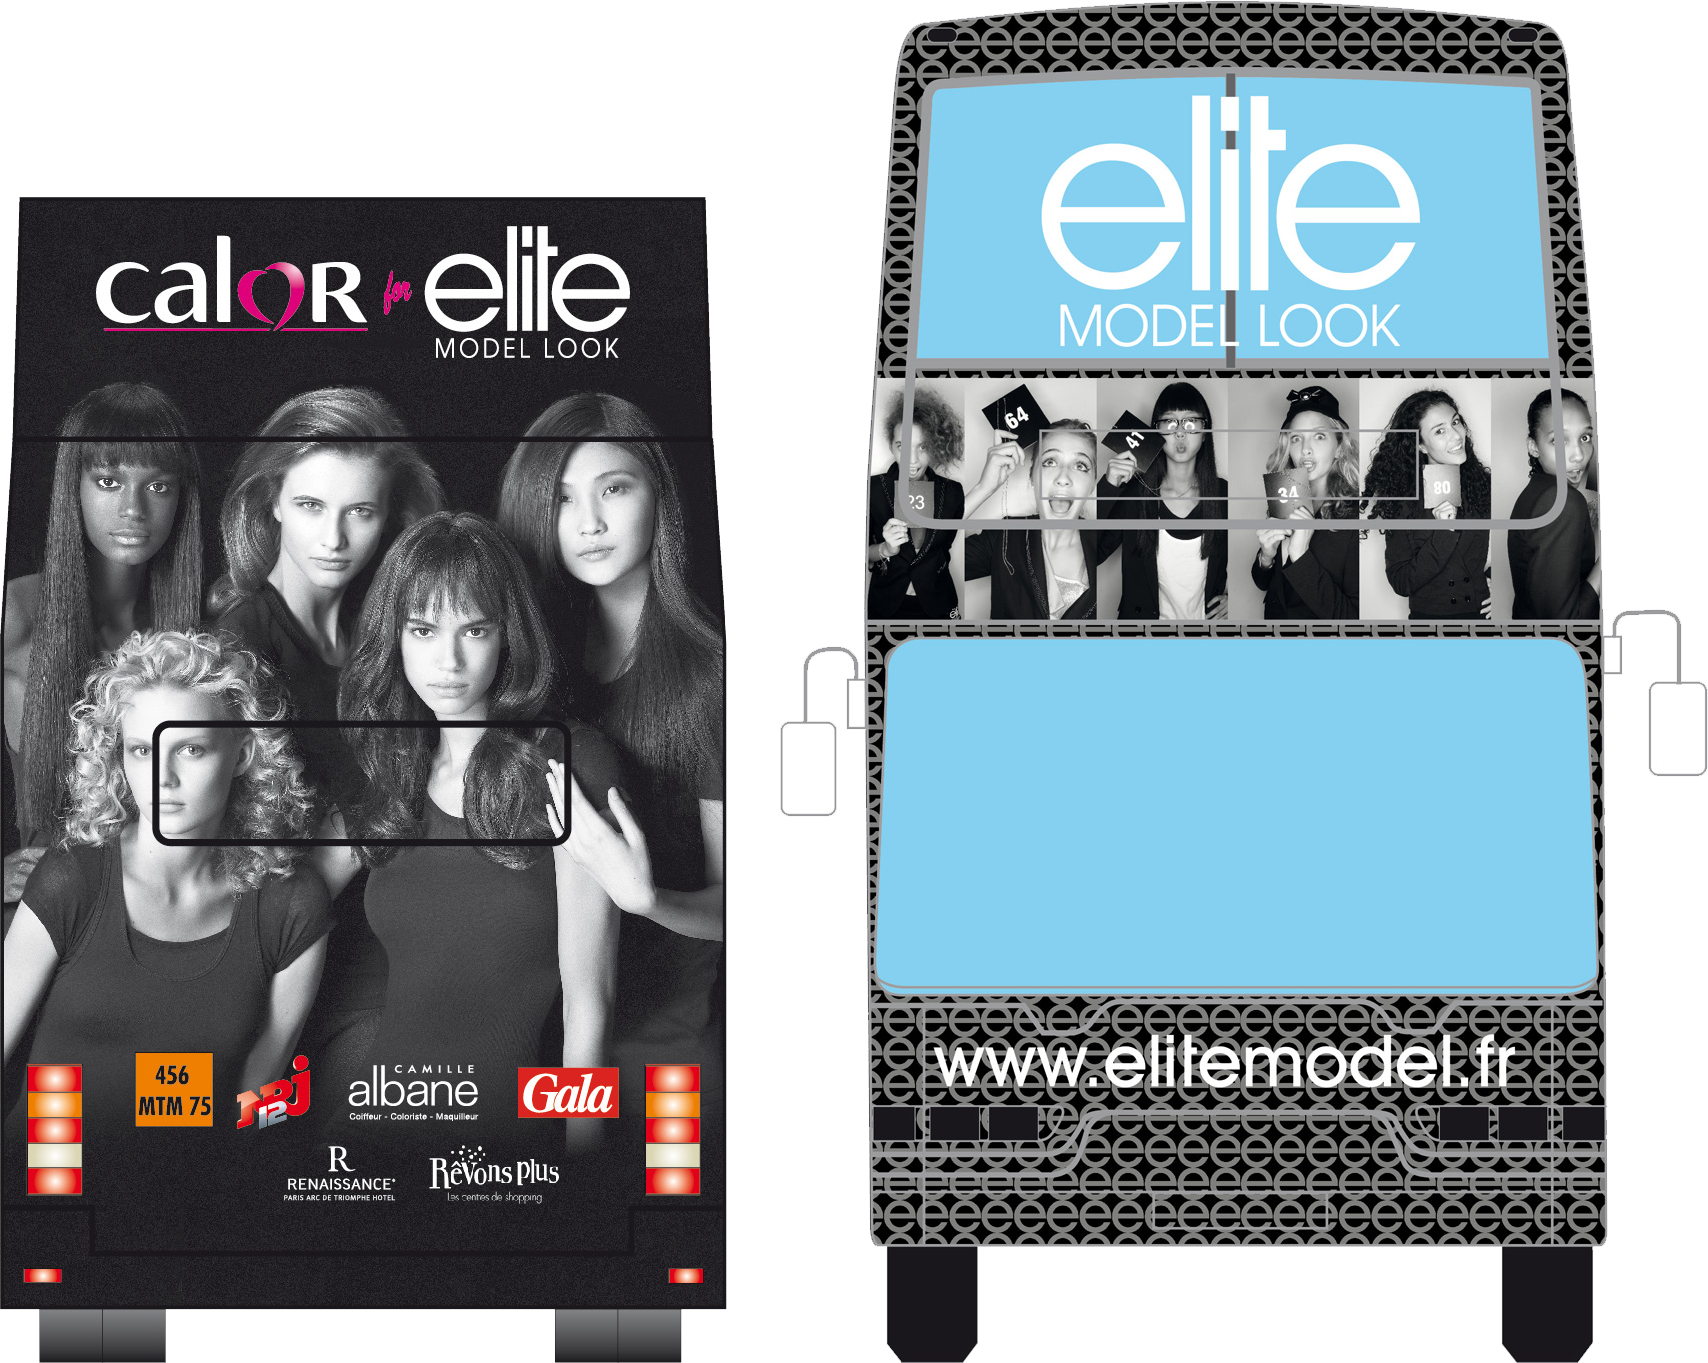 Elite Model Look 2009 total covering campaign